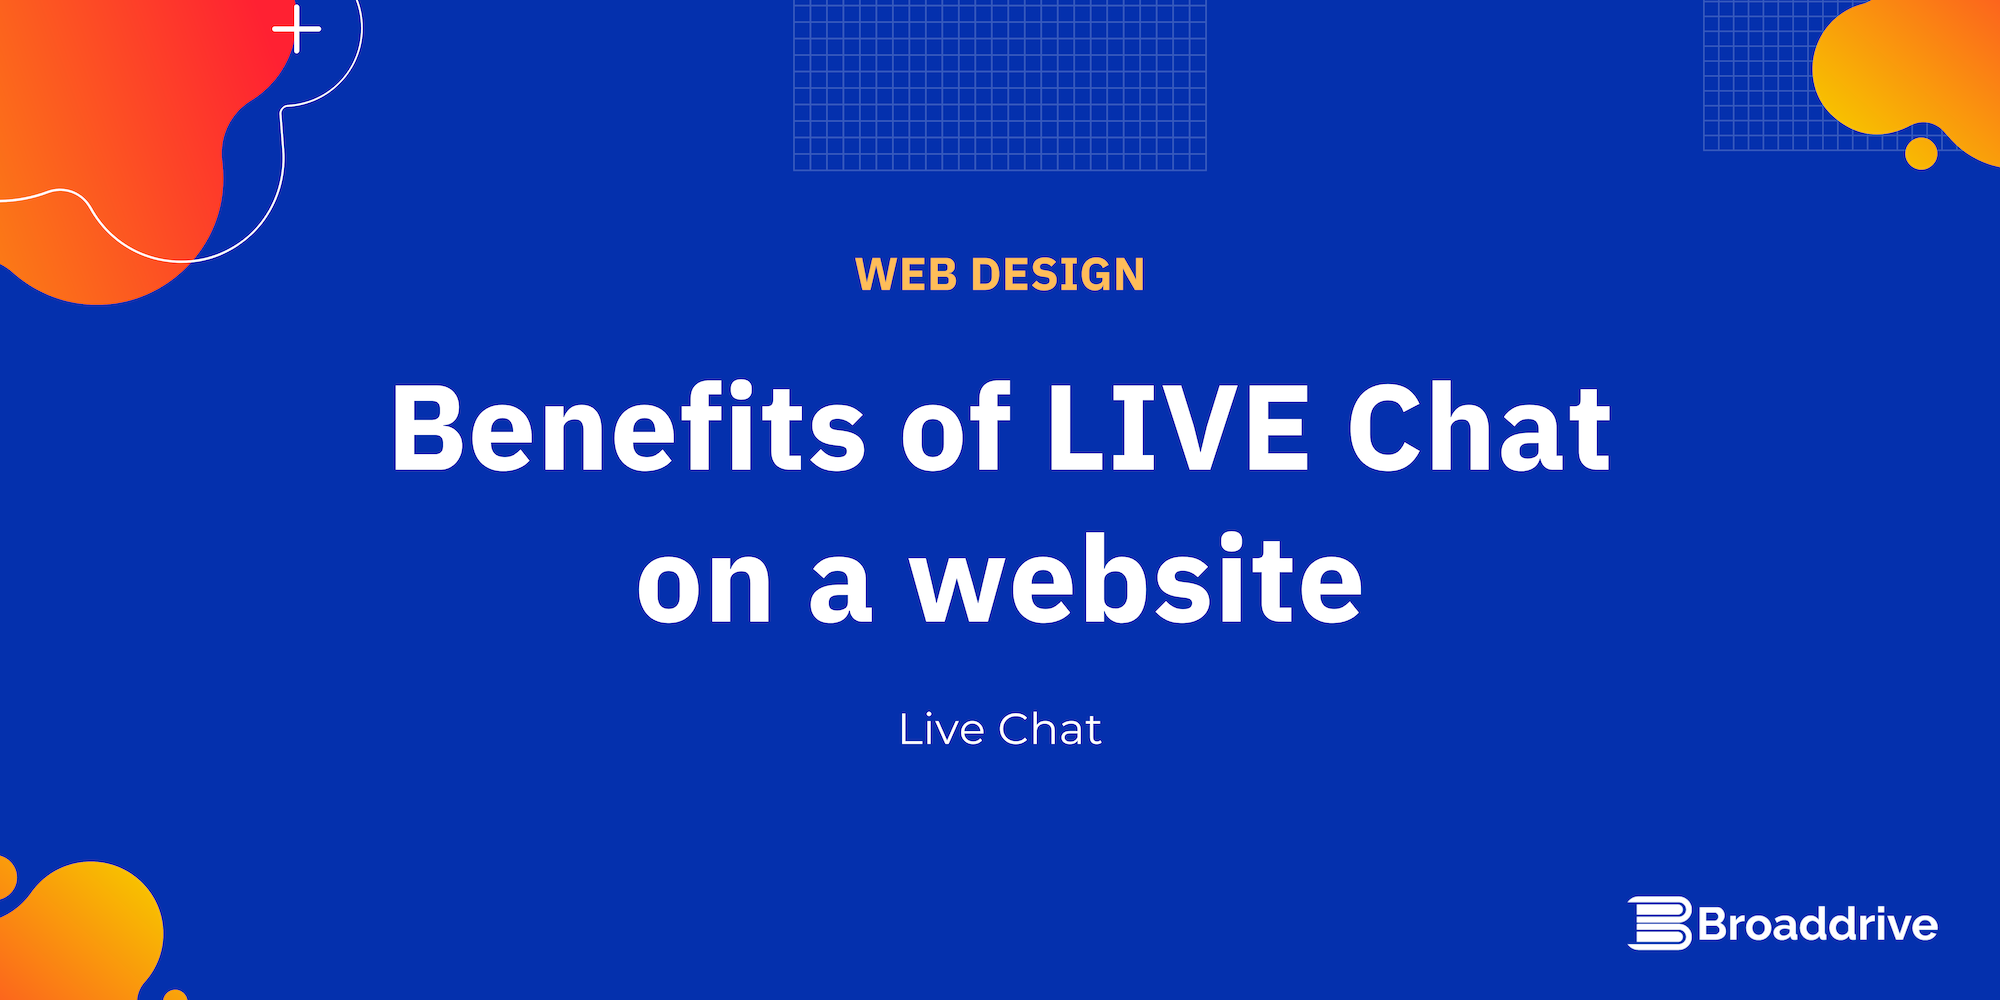 Benefits of Live Chat on a Website